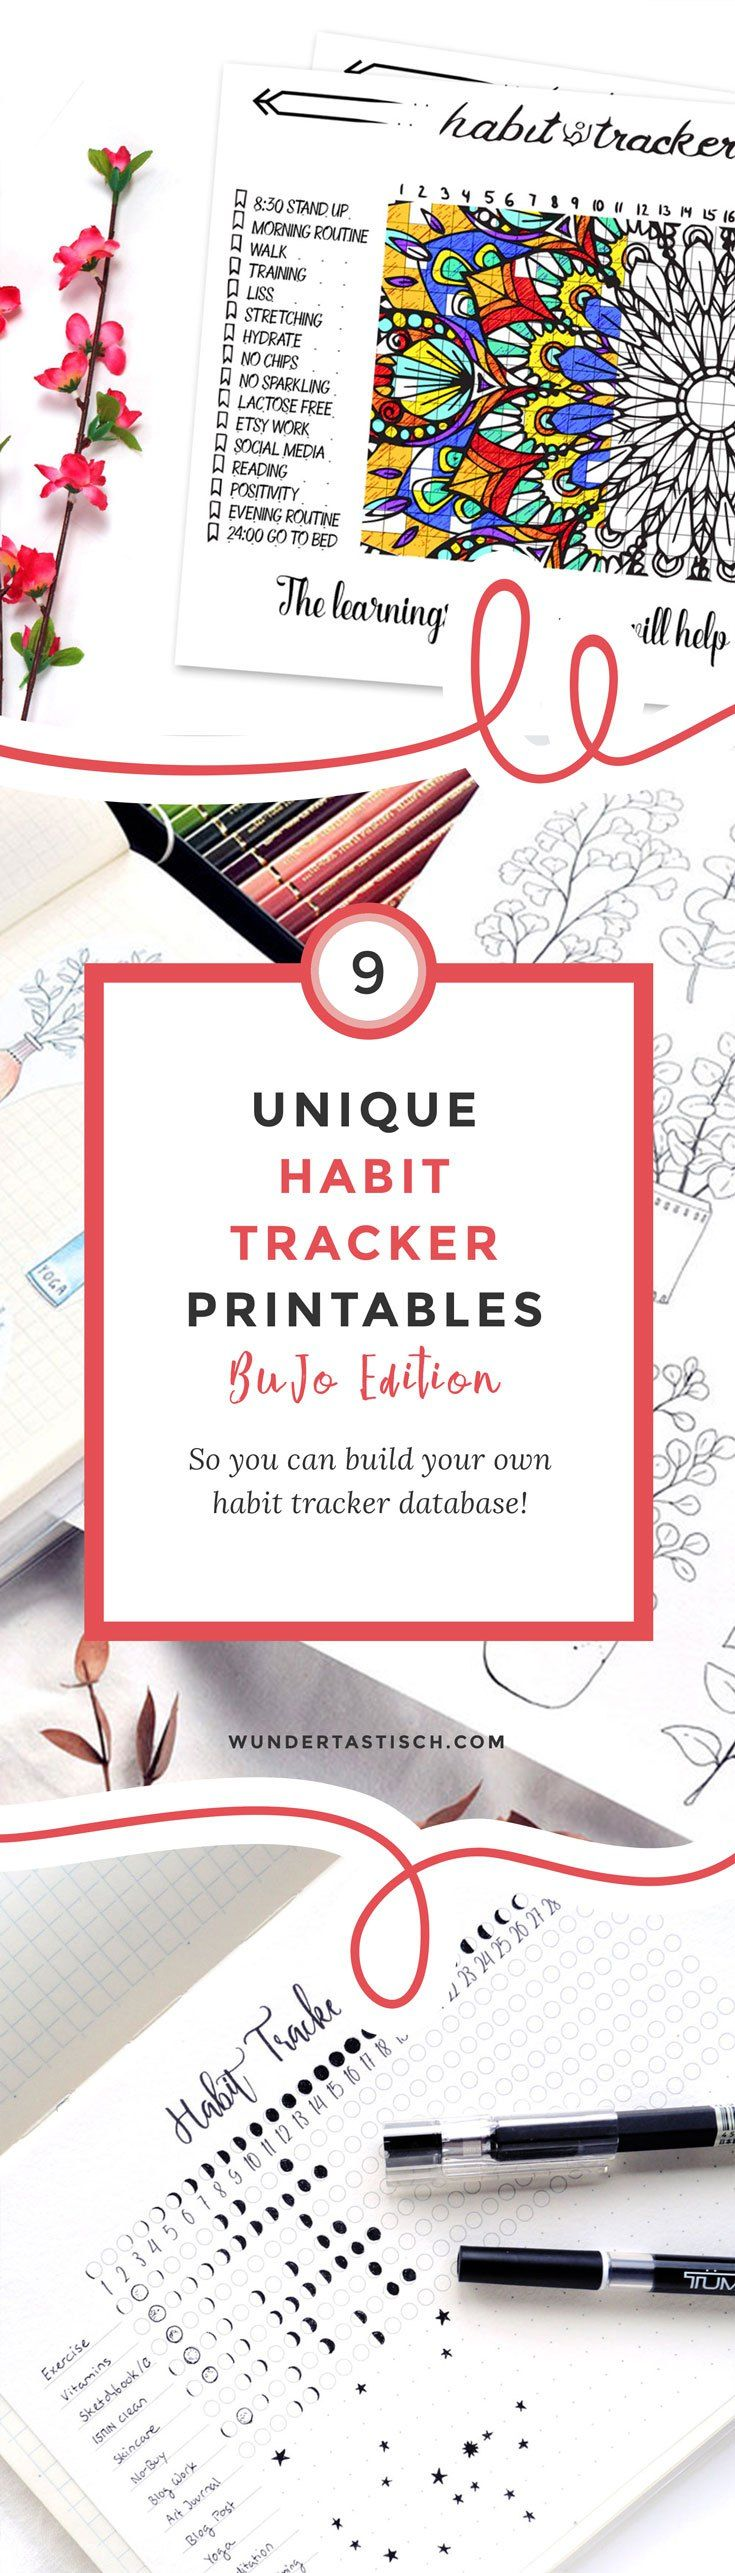 9 unique layouts to track habits in your bullet journal you can use as inspiration. Or feel free to purchase and download them as printables to save even more time. These unique trackers were designed by a group of amazing bullet journal enthusiasts and will beautify your bujo instantly!